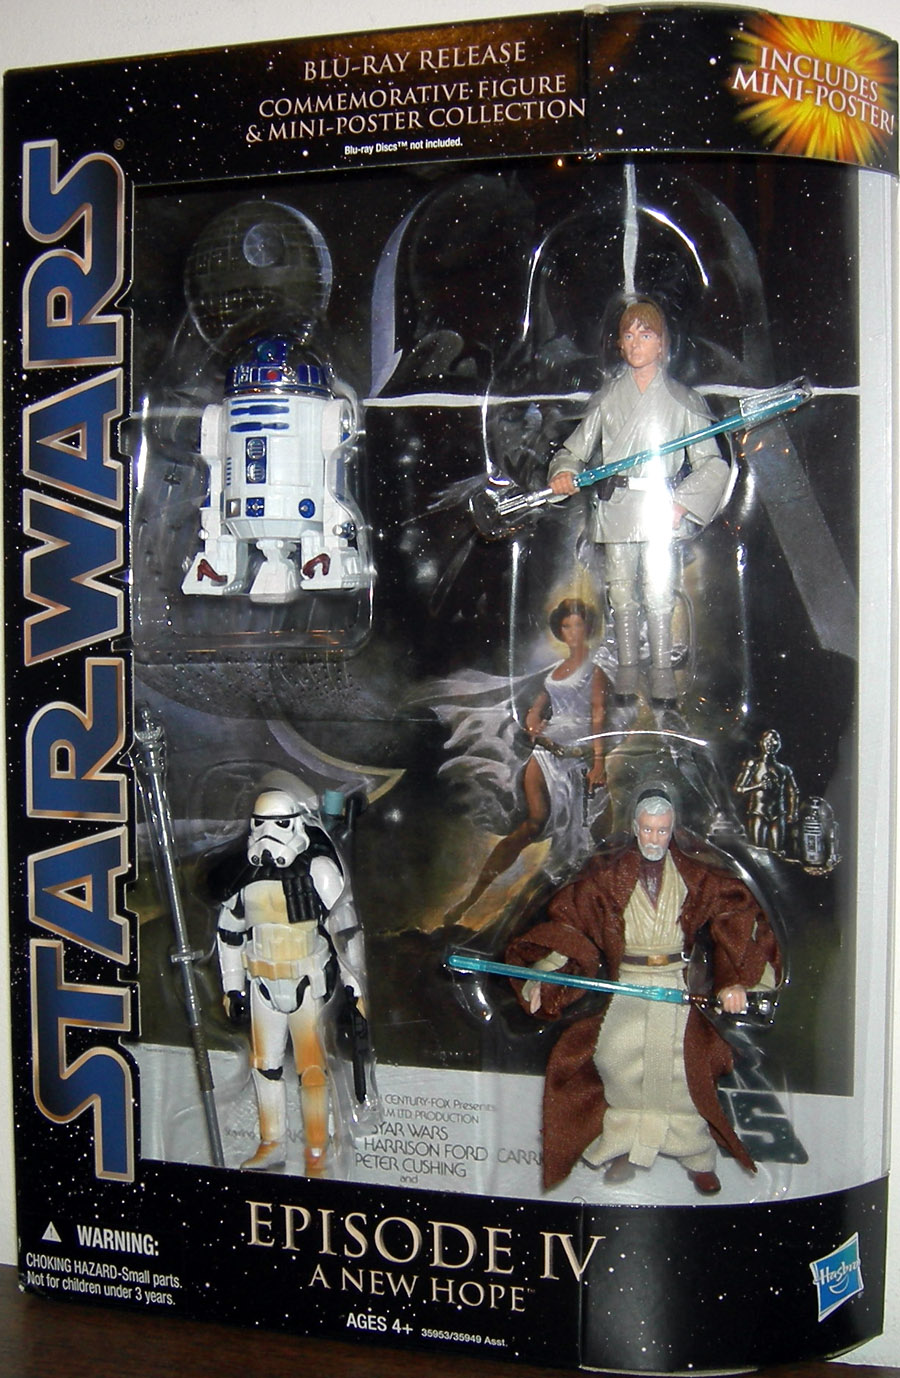 Star Wars Blu-Ray Release Commemorative Action Figures Mini-Poster  Collection Episode IV New Hope Set